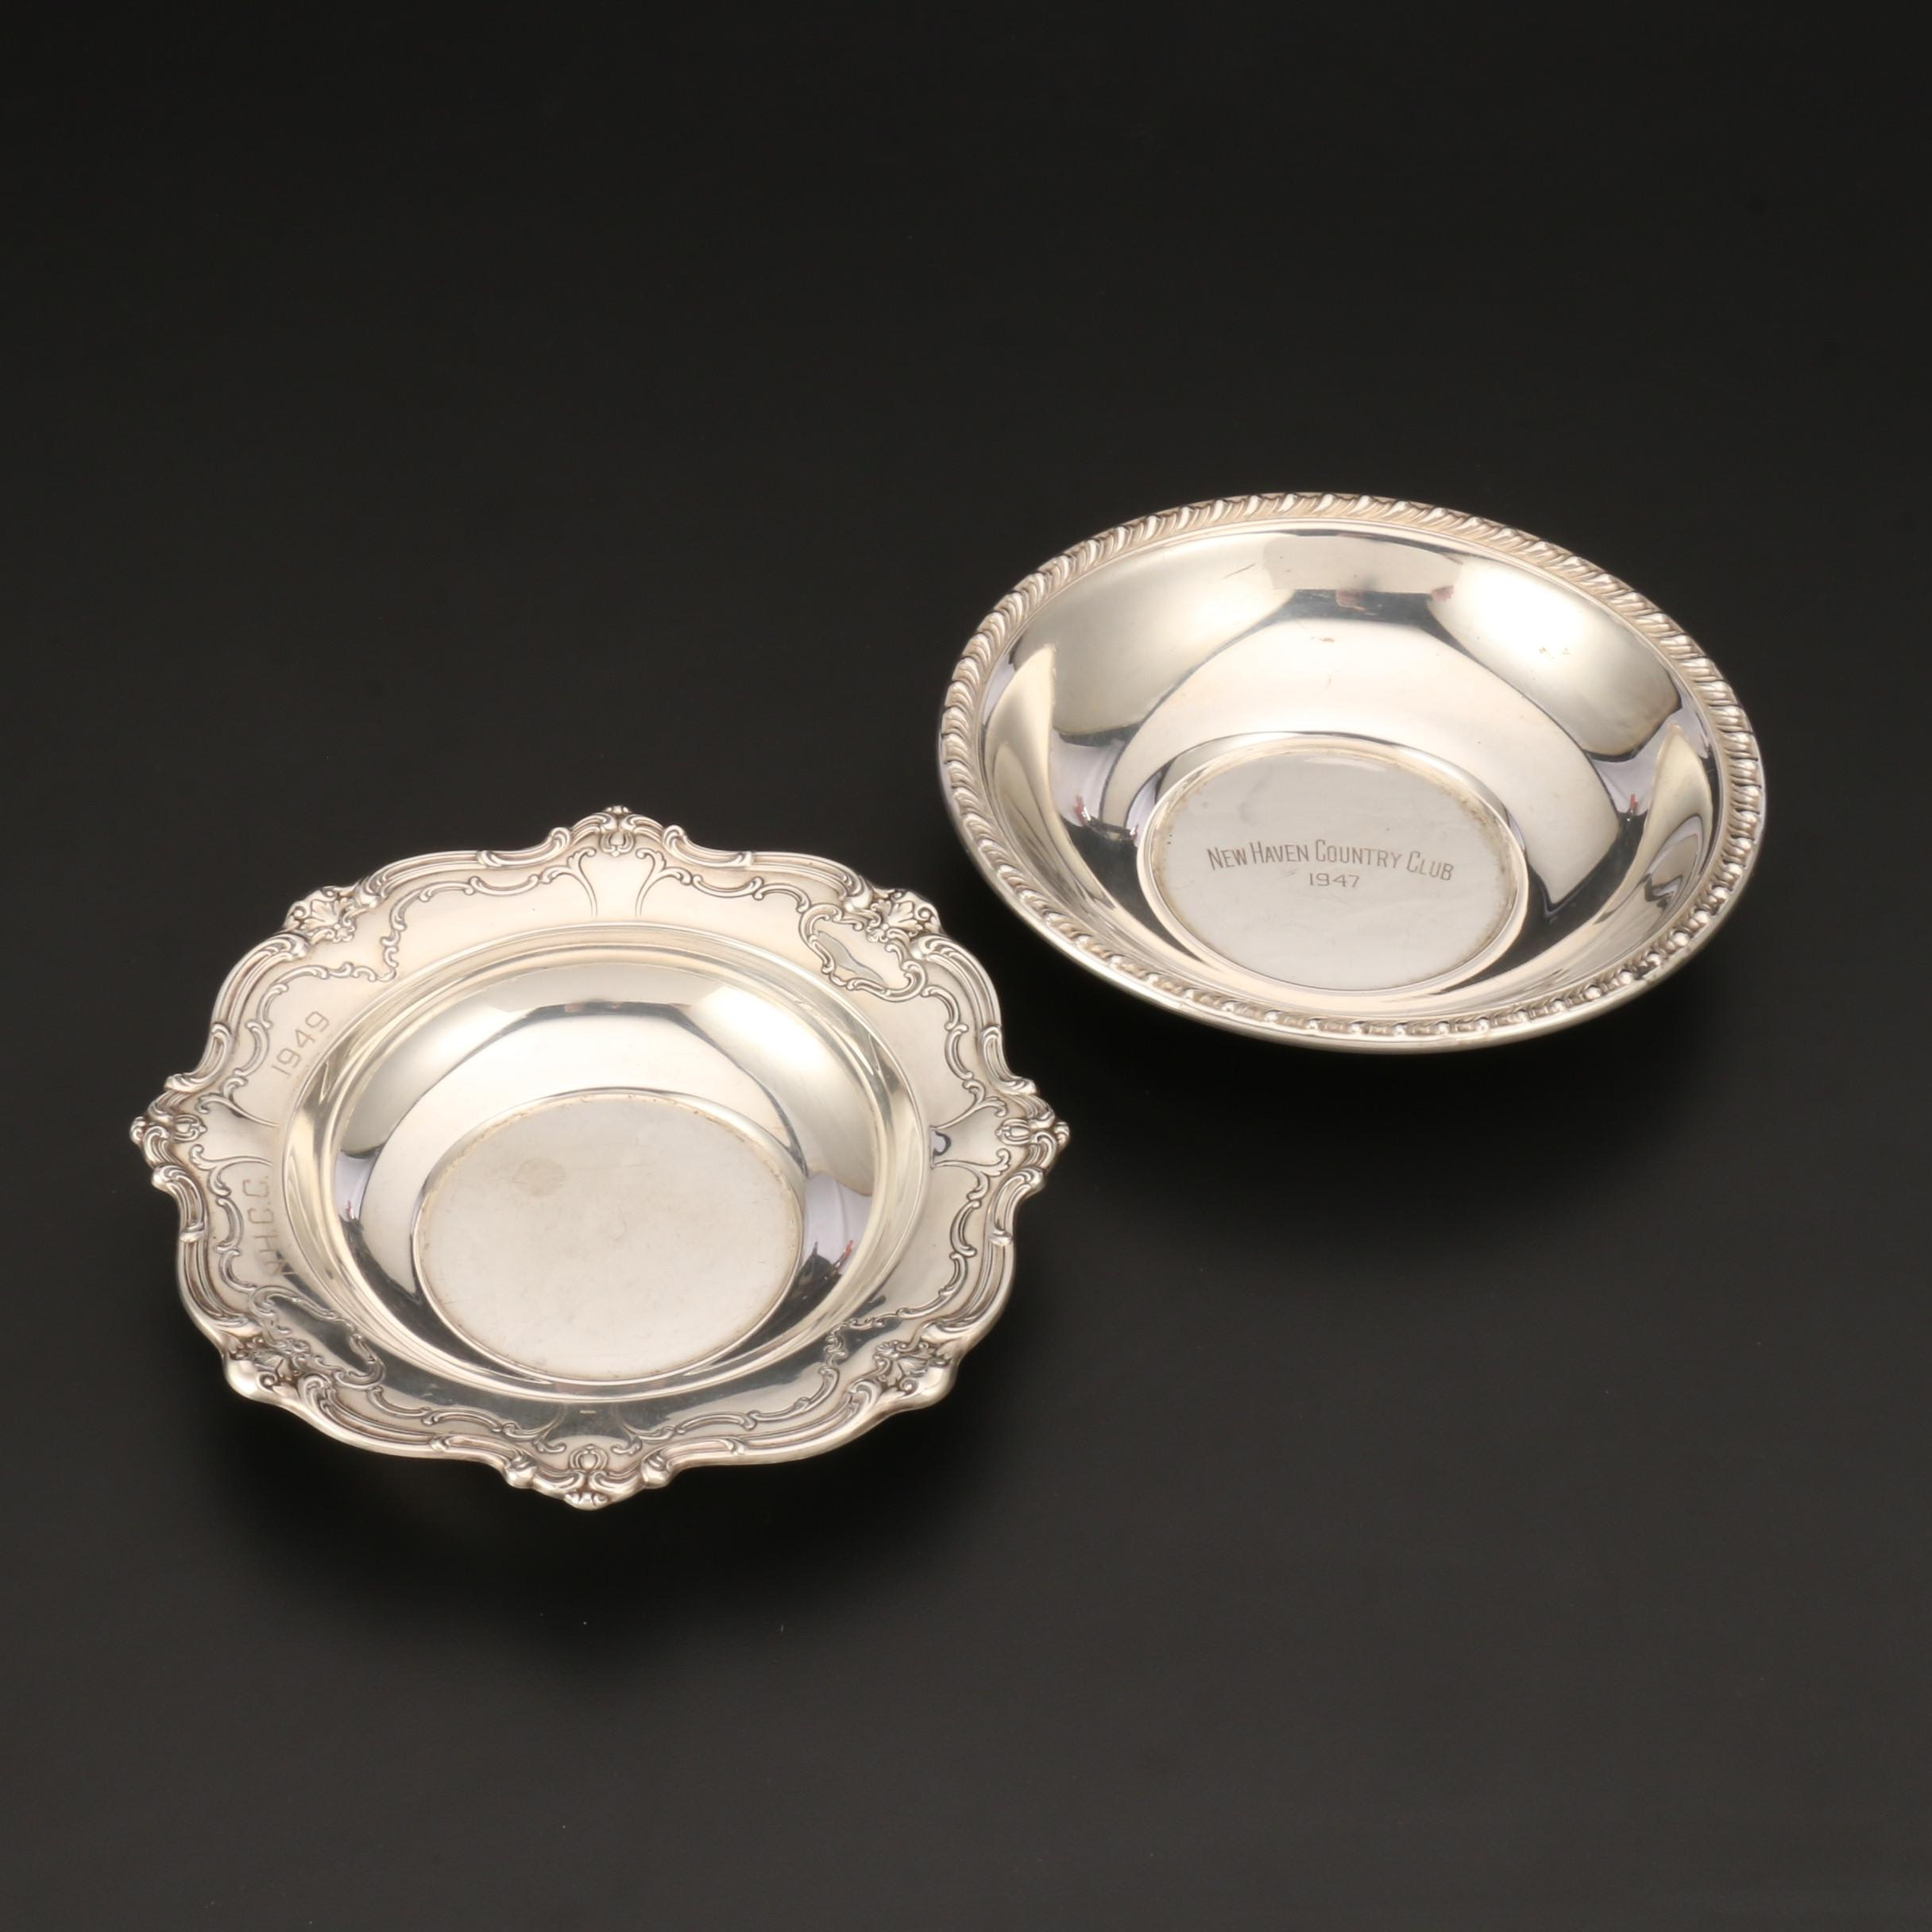 Sterling Silver Presentation Bowls From New Haven Country Club, 1940s